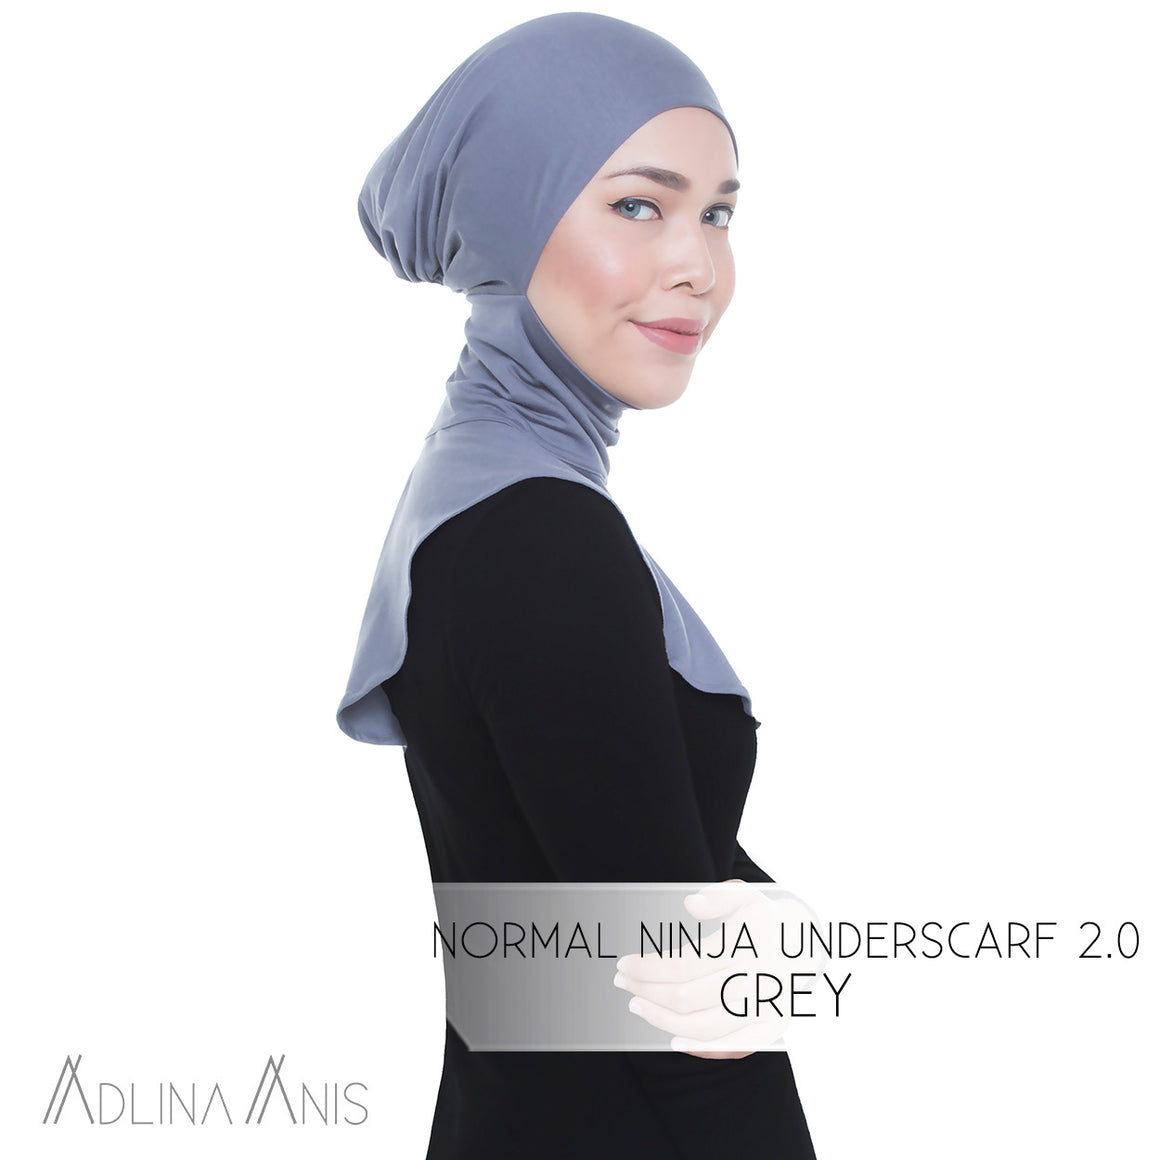 Normal Ninja Underscarf 2.0 - Grey